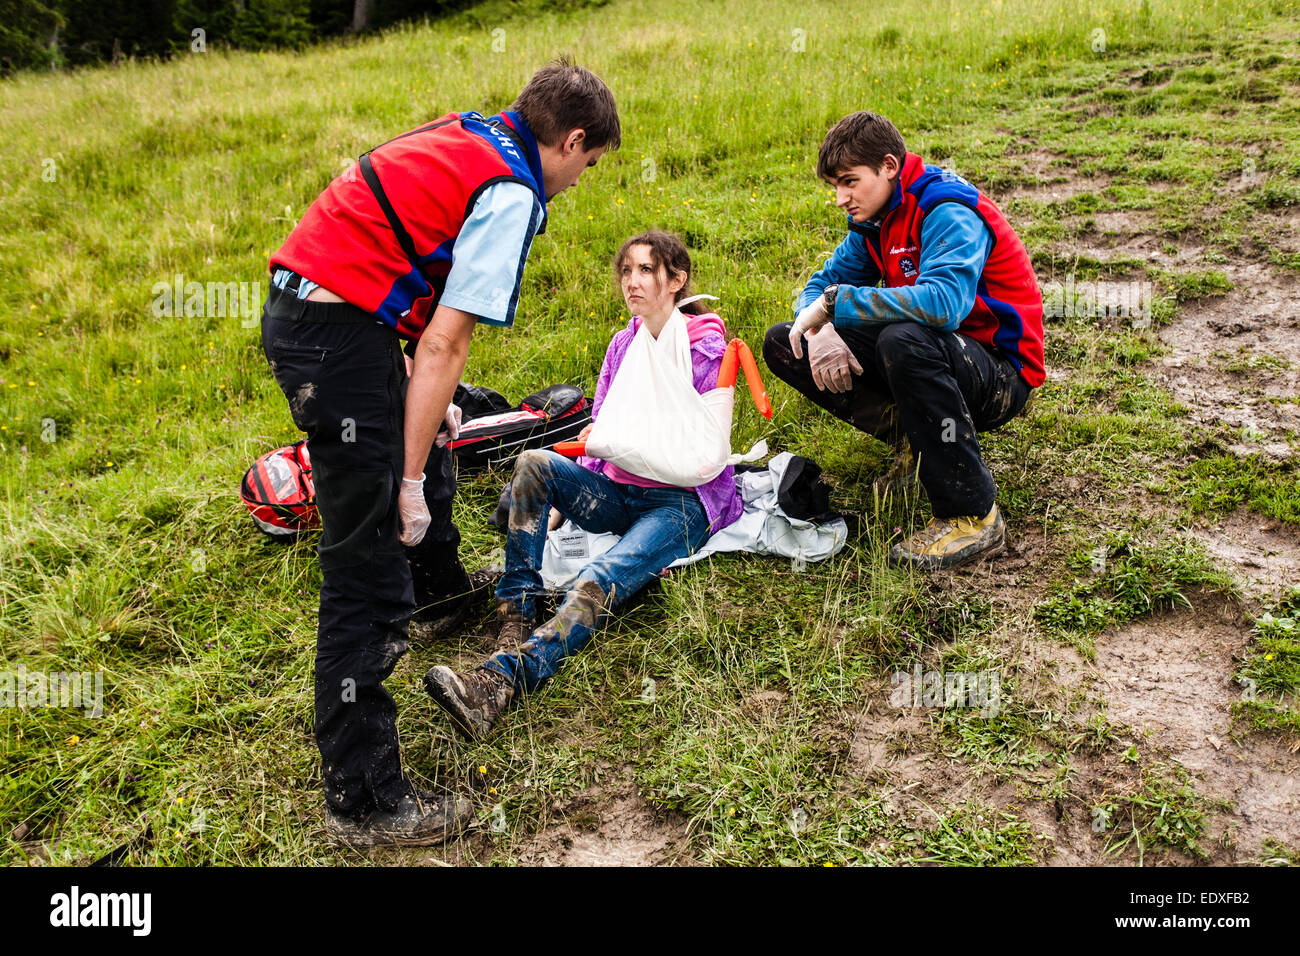 Woman being helped by mountain rescue team after breaking her arm after hiking in the Bavarian Alps, on waterlogged - Stock Image